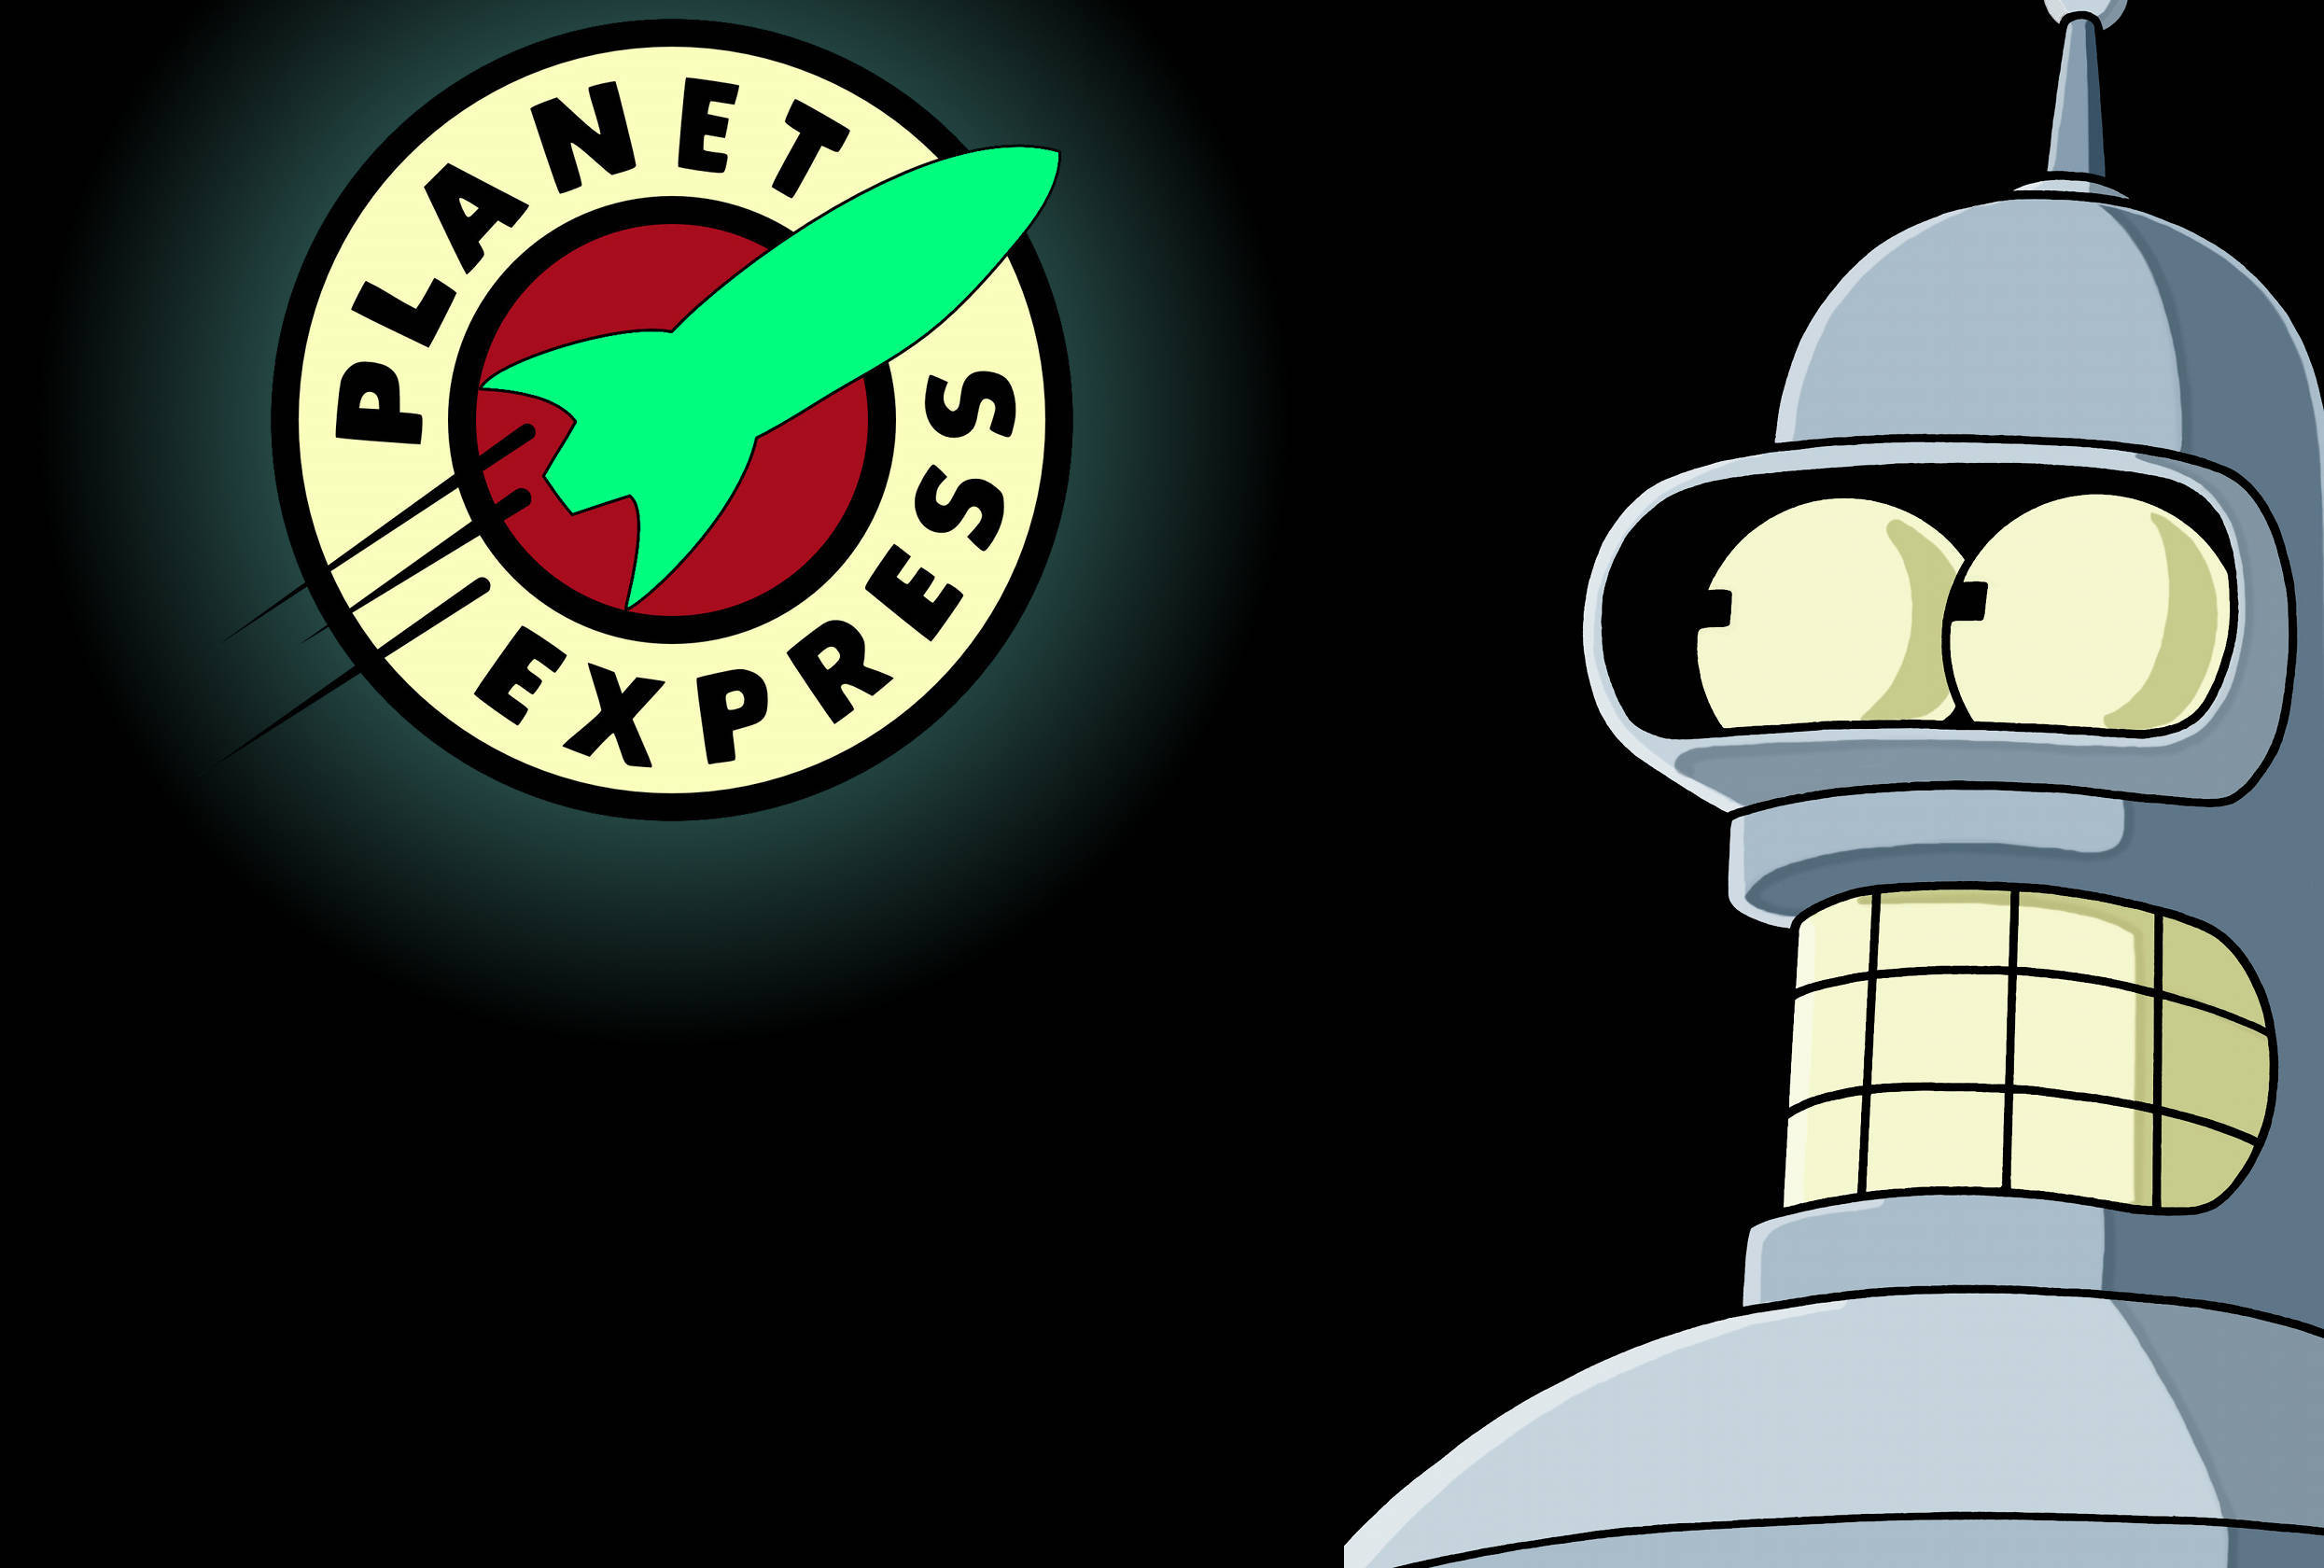 Bender   Futurama HR Wallpaper Just Wallpaperz 2490x1680